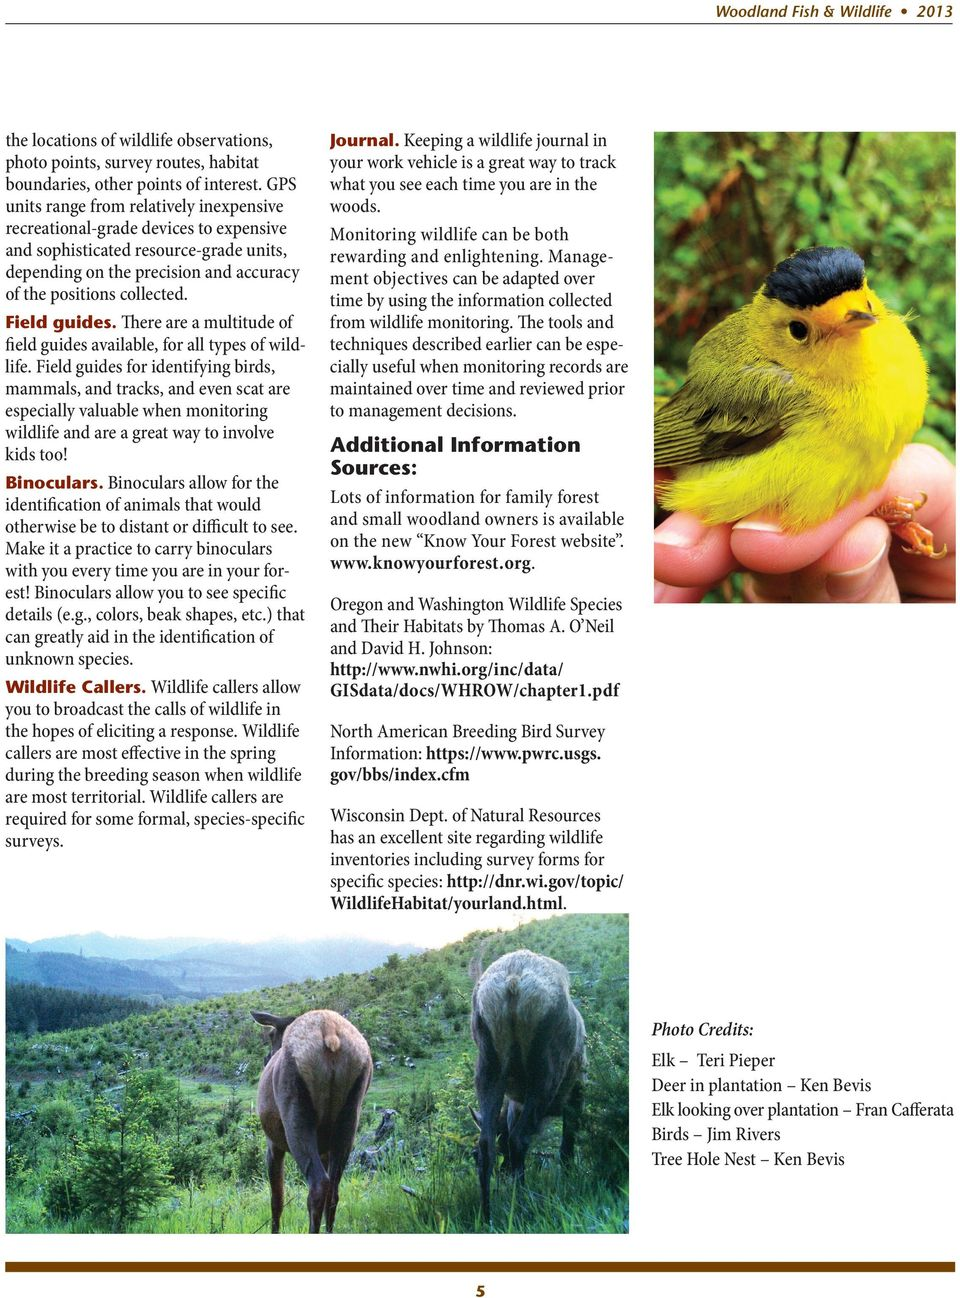 Field guides. There are a multitude of field guides available, for all types of wildlife.